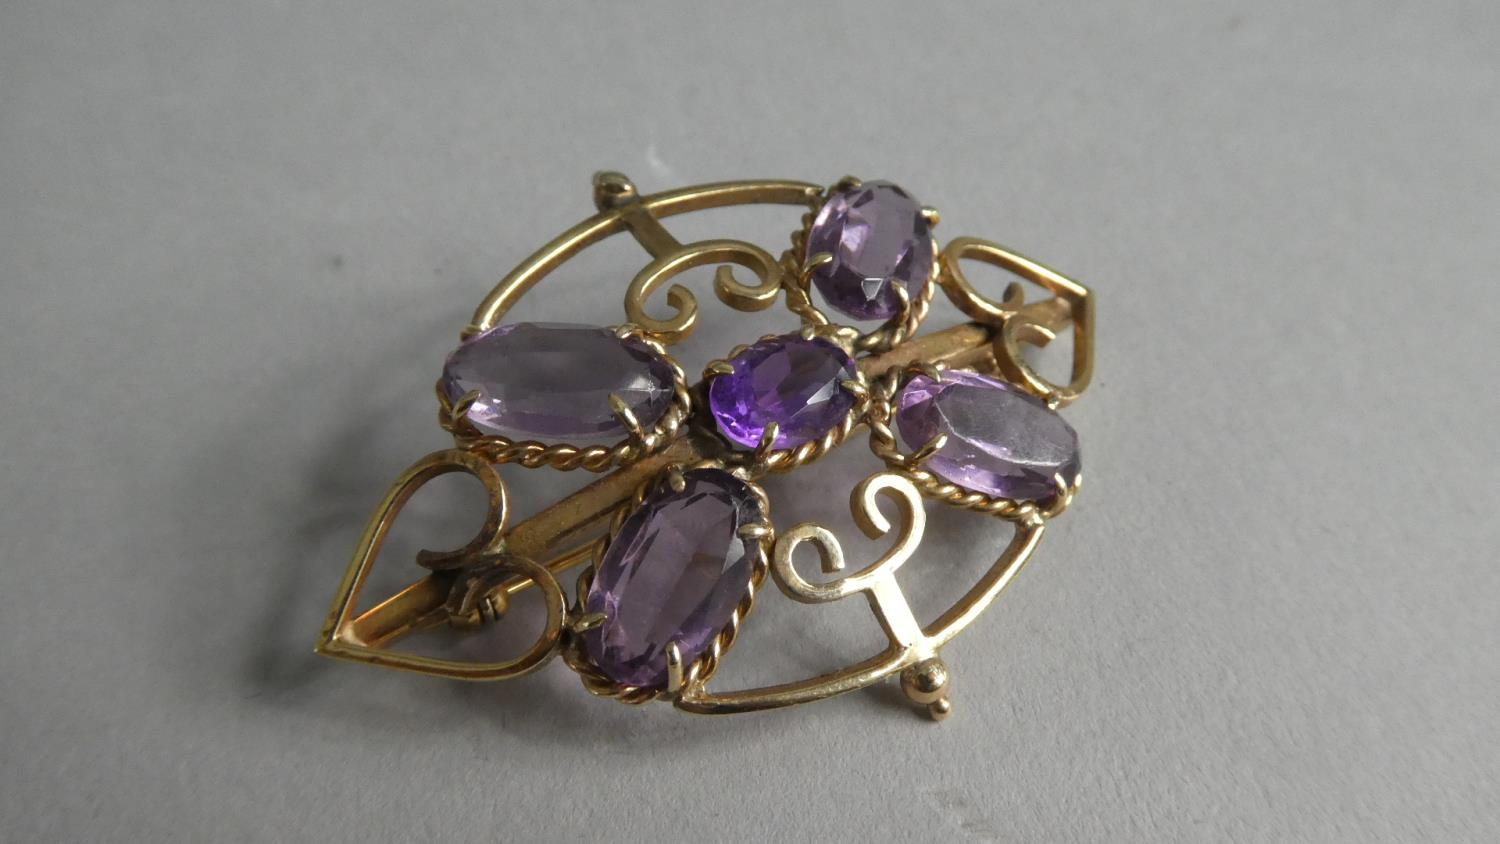 Lot 258 - A Pretty Early 20th Century Amethyst and 9ct Rose Gold Brooch Stamped to Reverse KXP or KMJ. 5cms